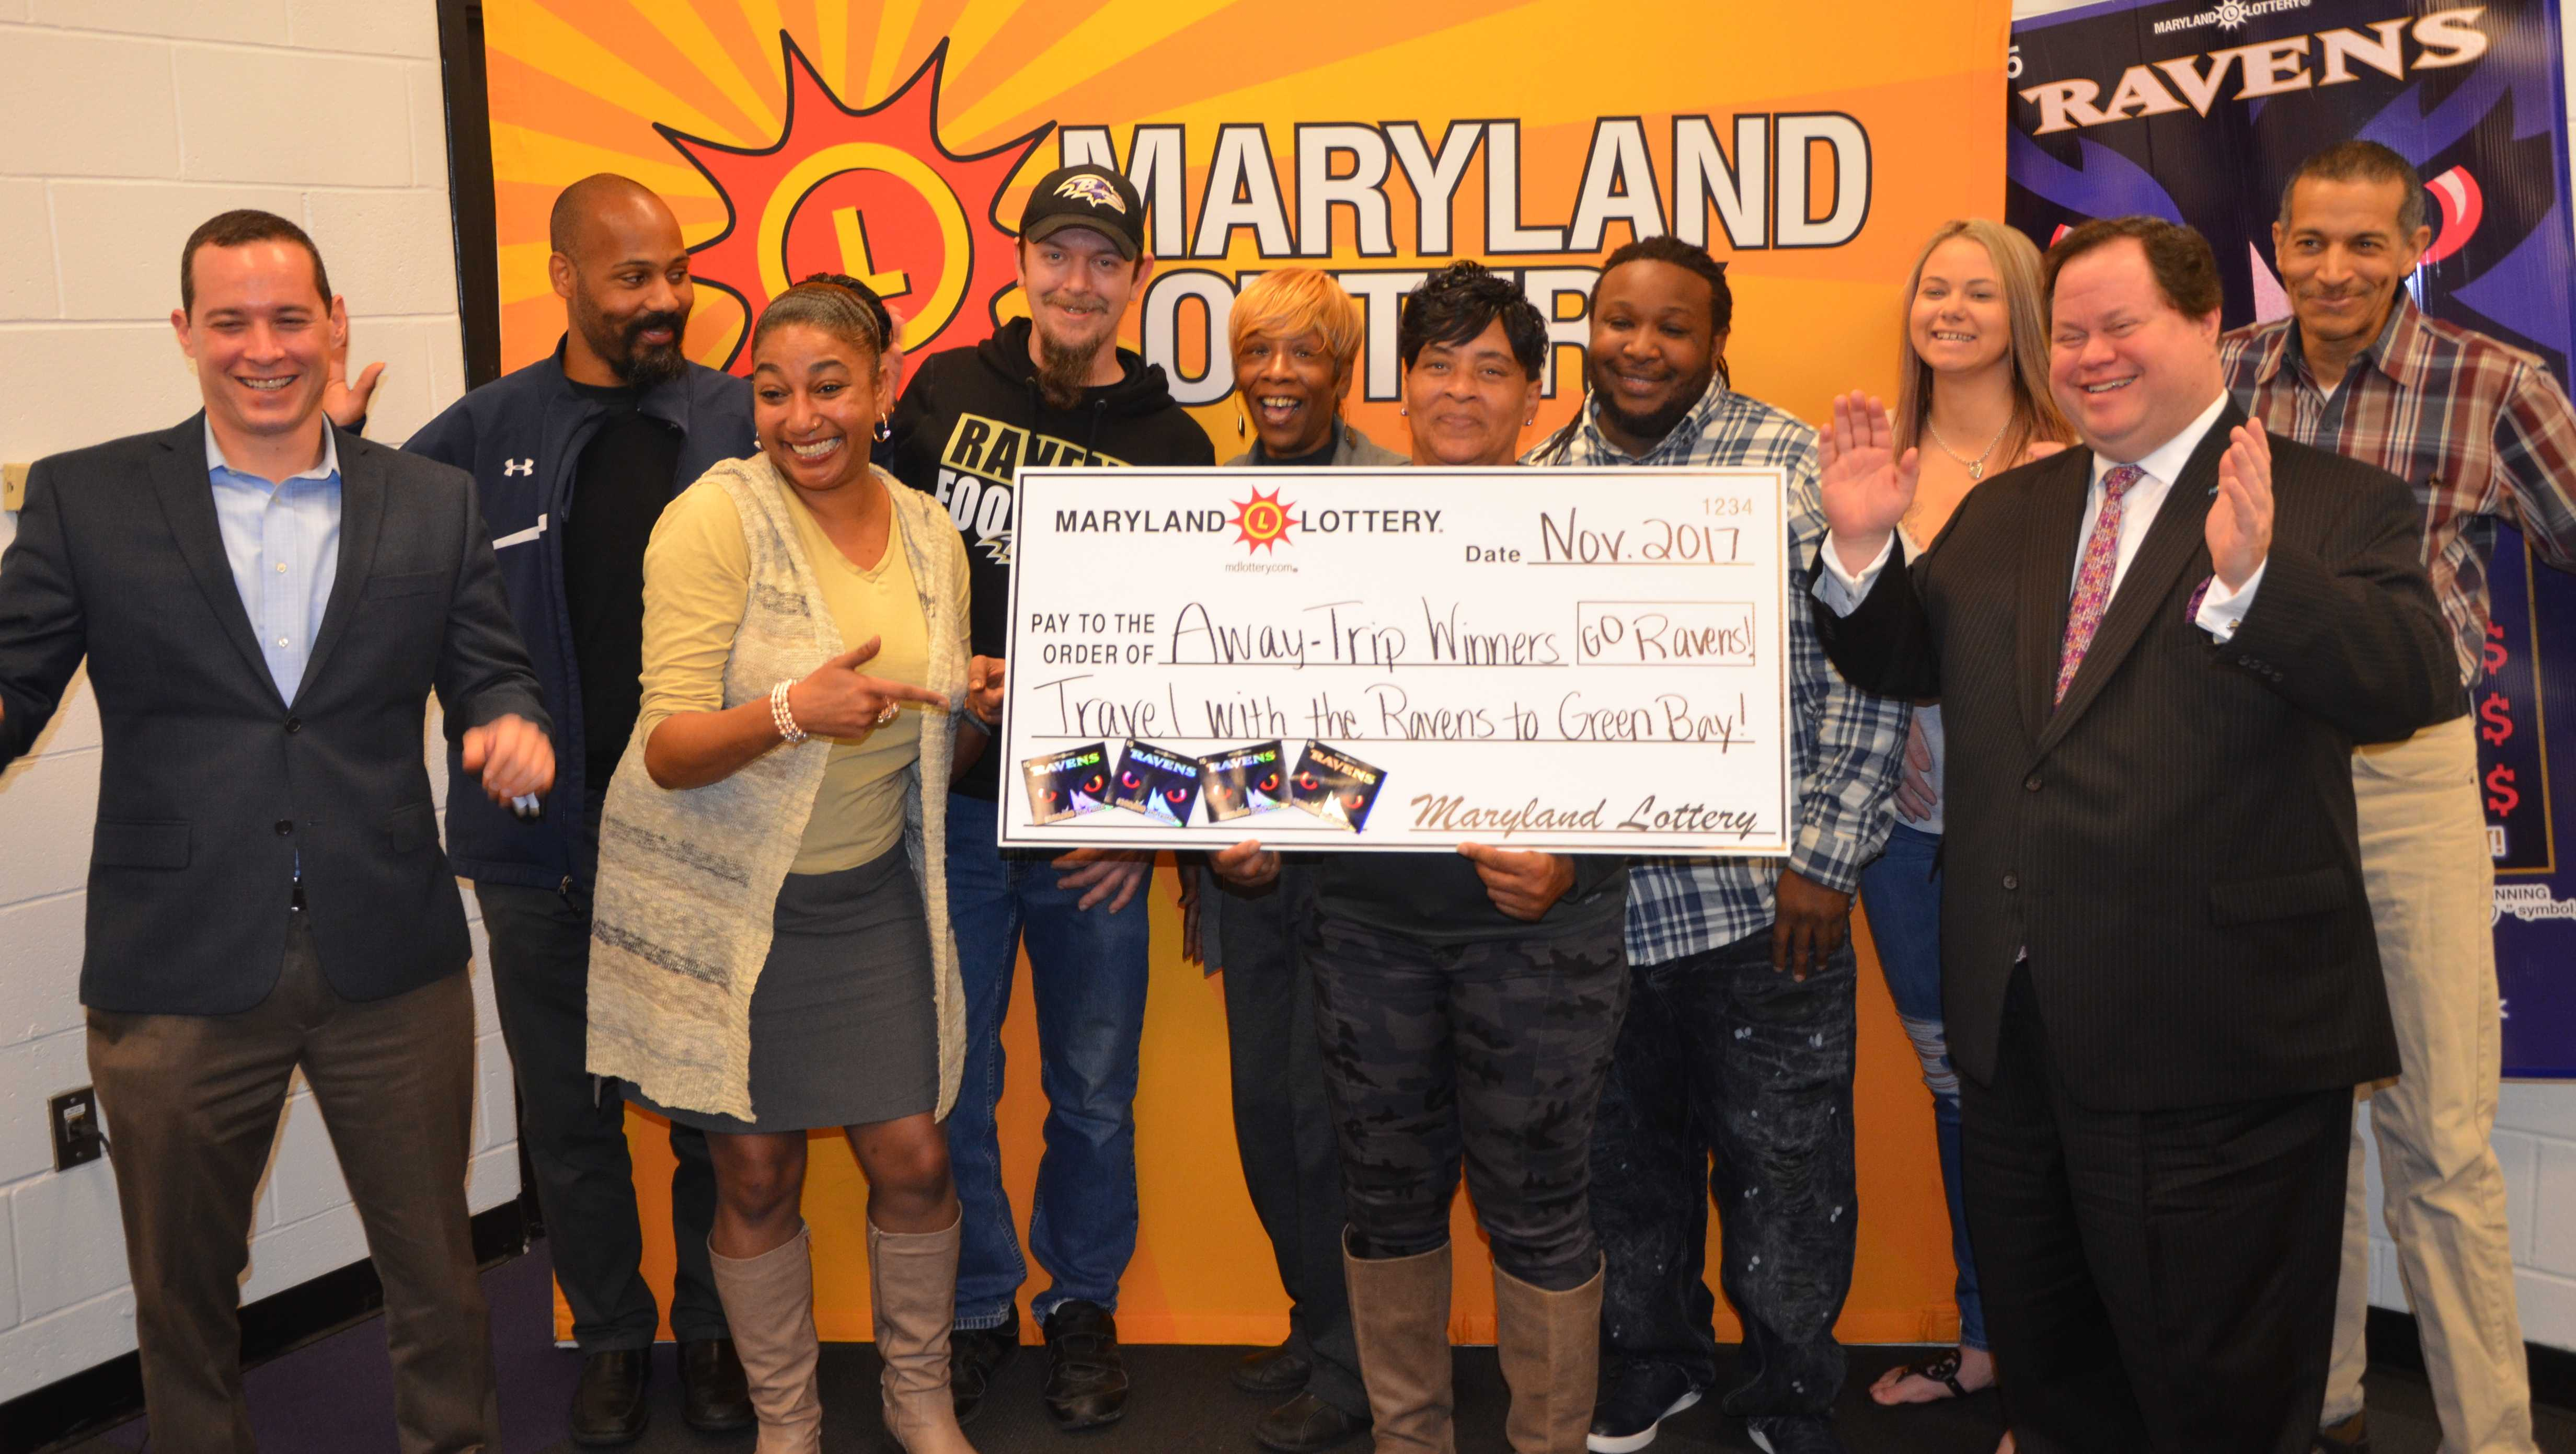 The Maryland Lottery and the Baltimore Ravens winners